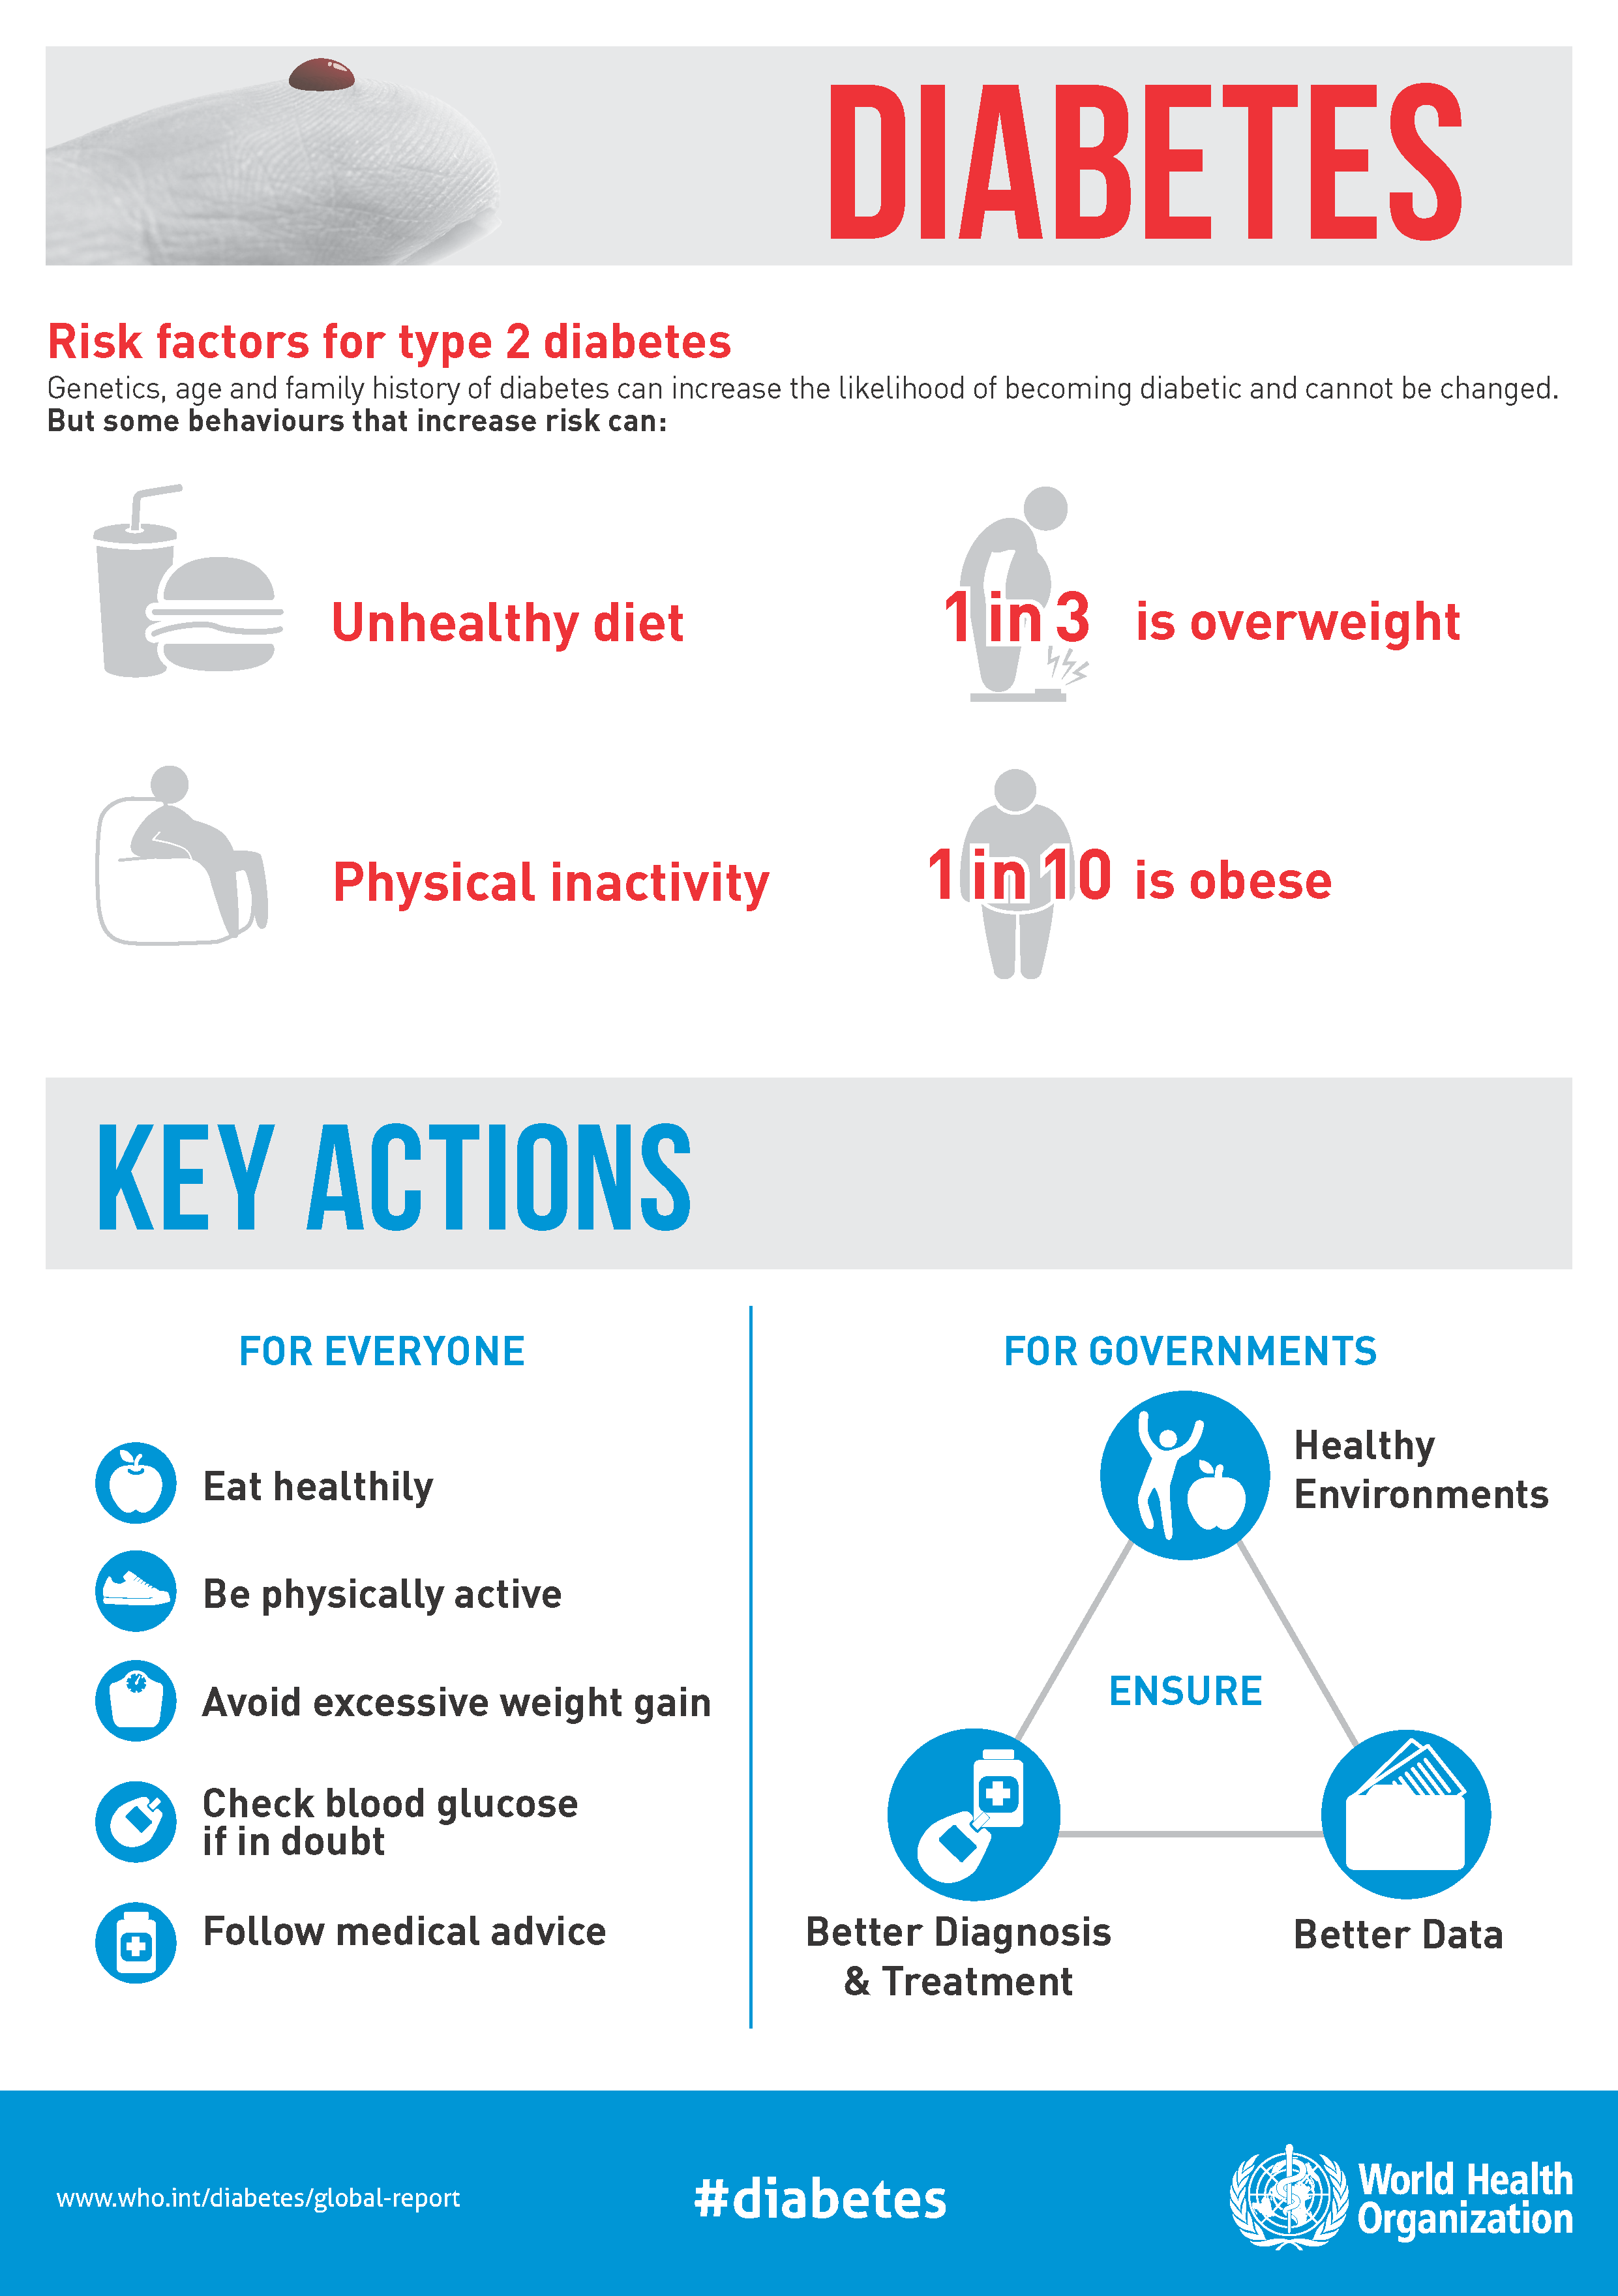 Diabetes infographic. Risk factors for type 2 diabetes: genetics, age and family history of diabetes can increase the likelihood of becoming diabetic and cannot be changed. But some behaviours that increase risk can: unhealthy diet, 1in 3 is overweight, physical inactivity, 1 in 10 is obese.  Key actions: For everyone - eat healthy, be physically active, avoid excessive wright gain, check blood glucose if in doubt, follow medical advice.  For governments: Ensure healthy environments, better diagnosis & treatments and better data.